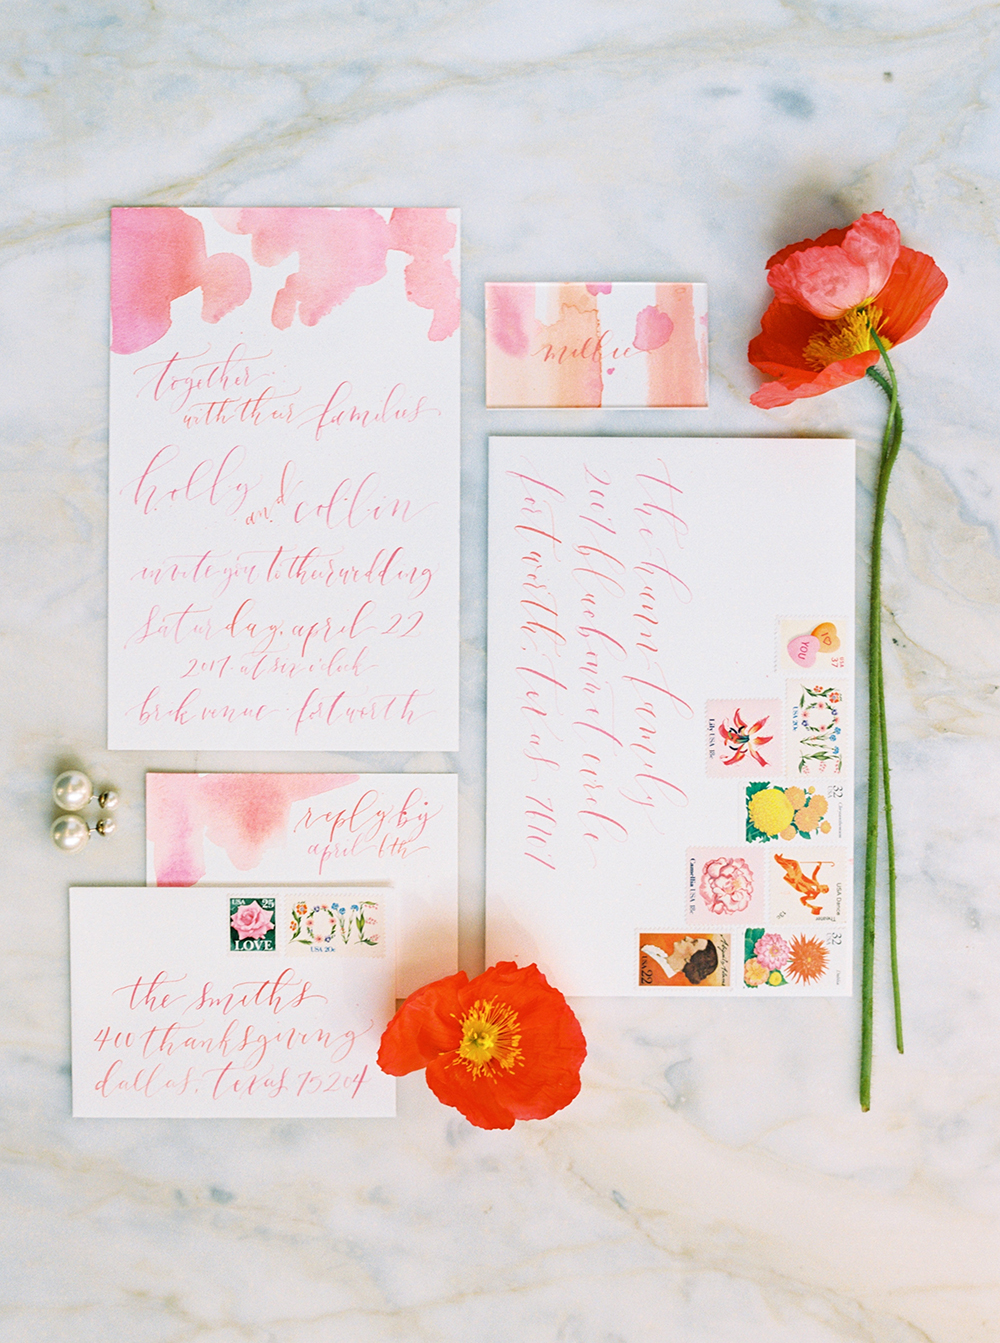 floral watercolor wedding invitations - photo by Jessica Gold Photography http://ruffledblog.com/vibrant-summer-wedding-inspiration-with-fun-colors